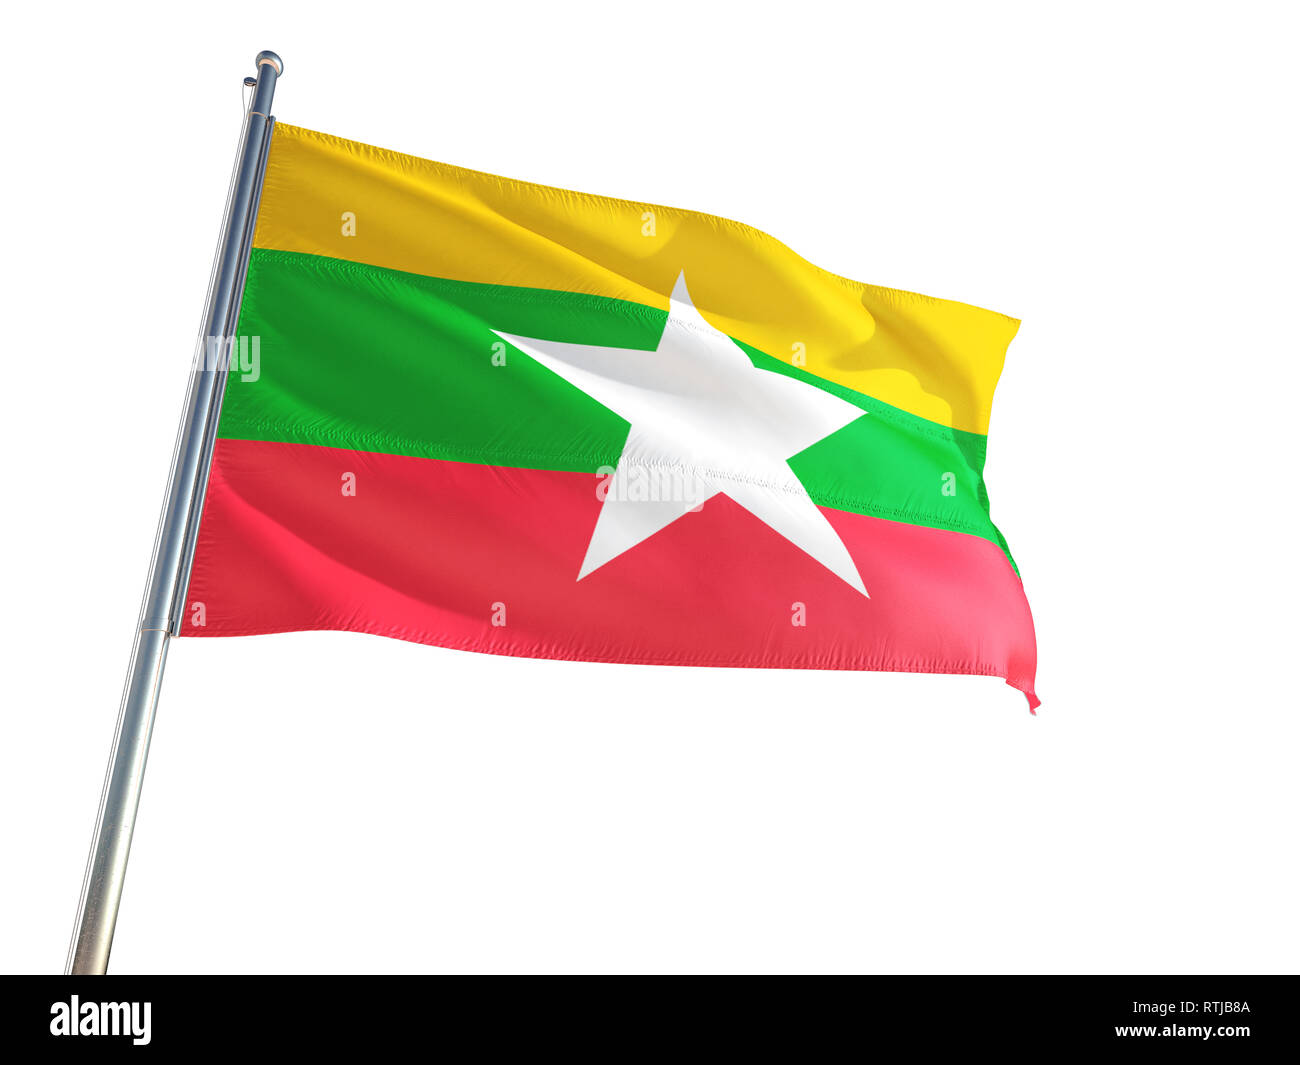 Myanmar - Burma National Flag waving in the wind, isolated white background. High Definition - Stock Image